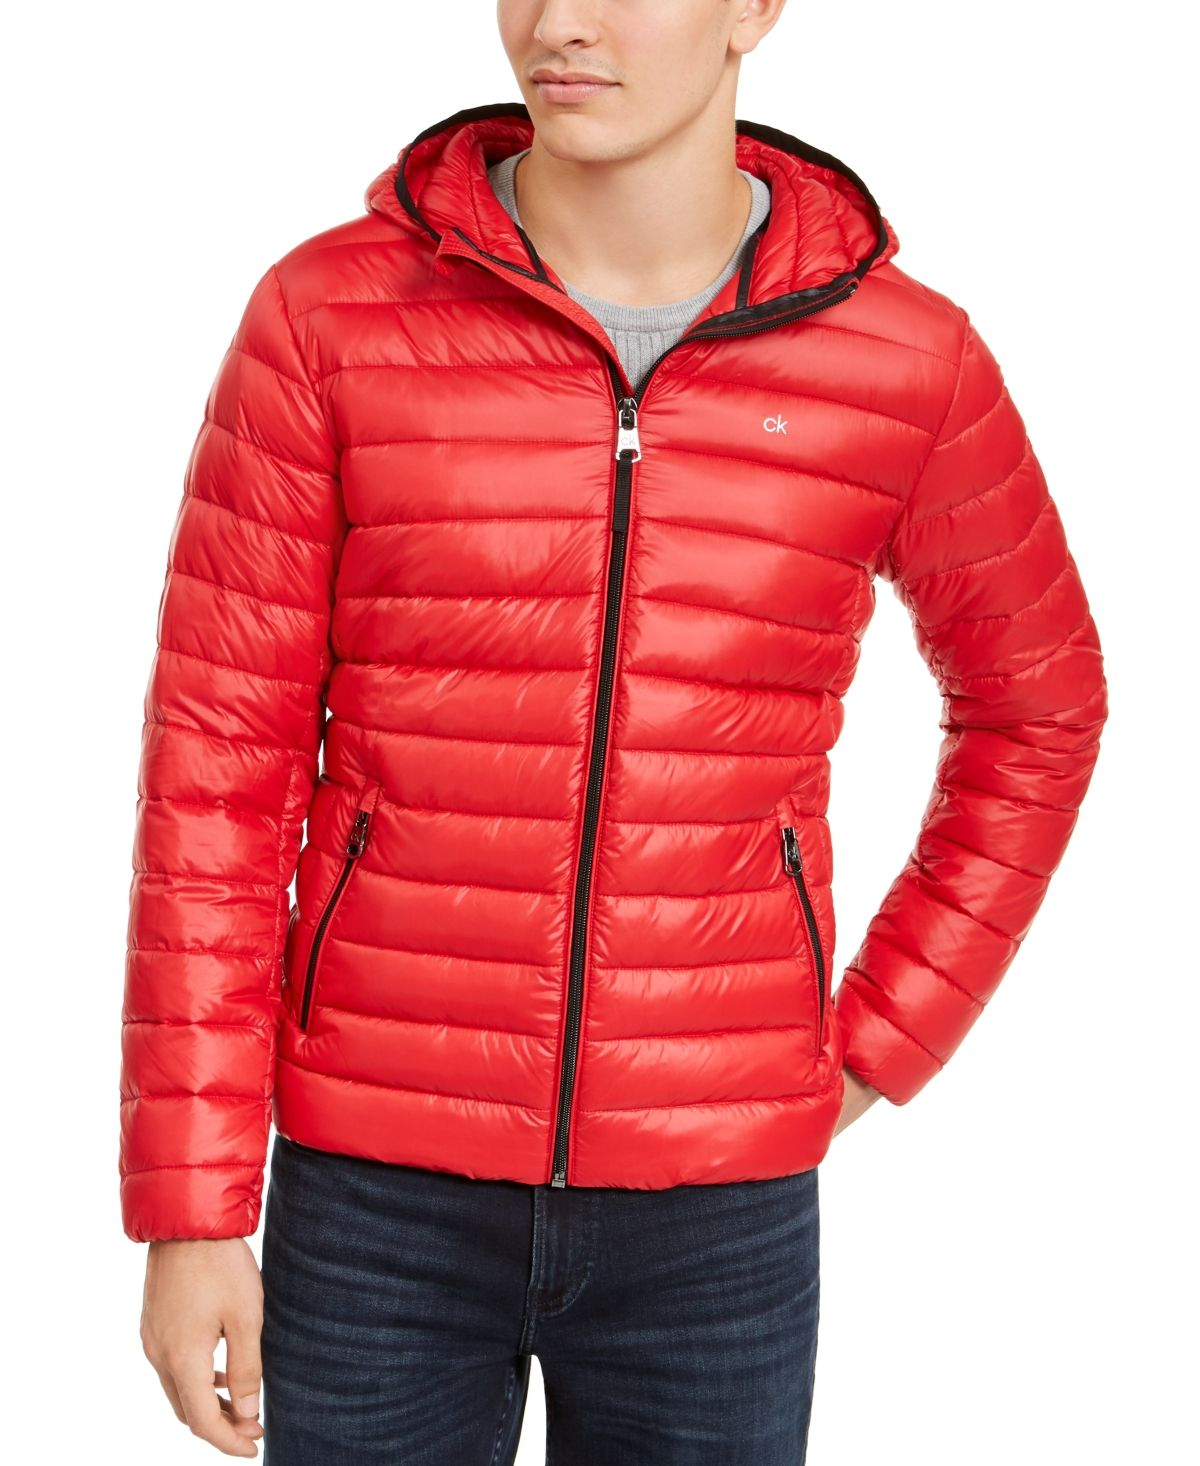 Calvin Klein Men S Packable Down Hooded Puffer Jacket Created For Macy S Reviews Coats Jackets Men Macy S Calvin Klein Men Calvin Klein Jackets [ 1466 x 1200 Pixel ]